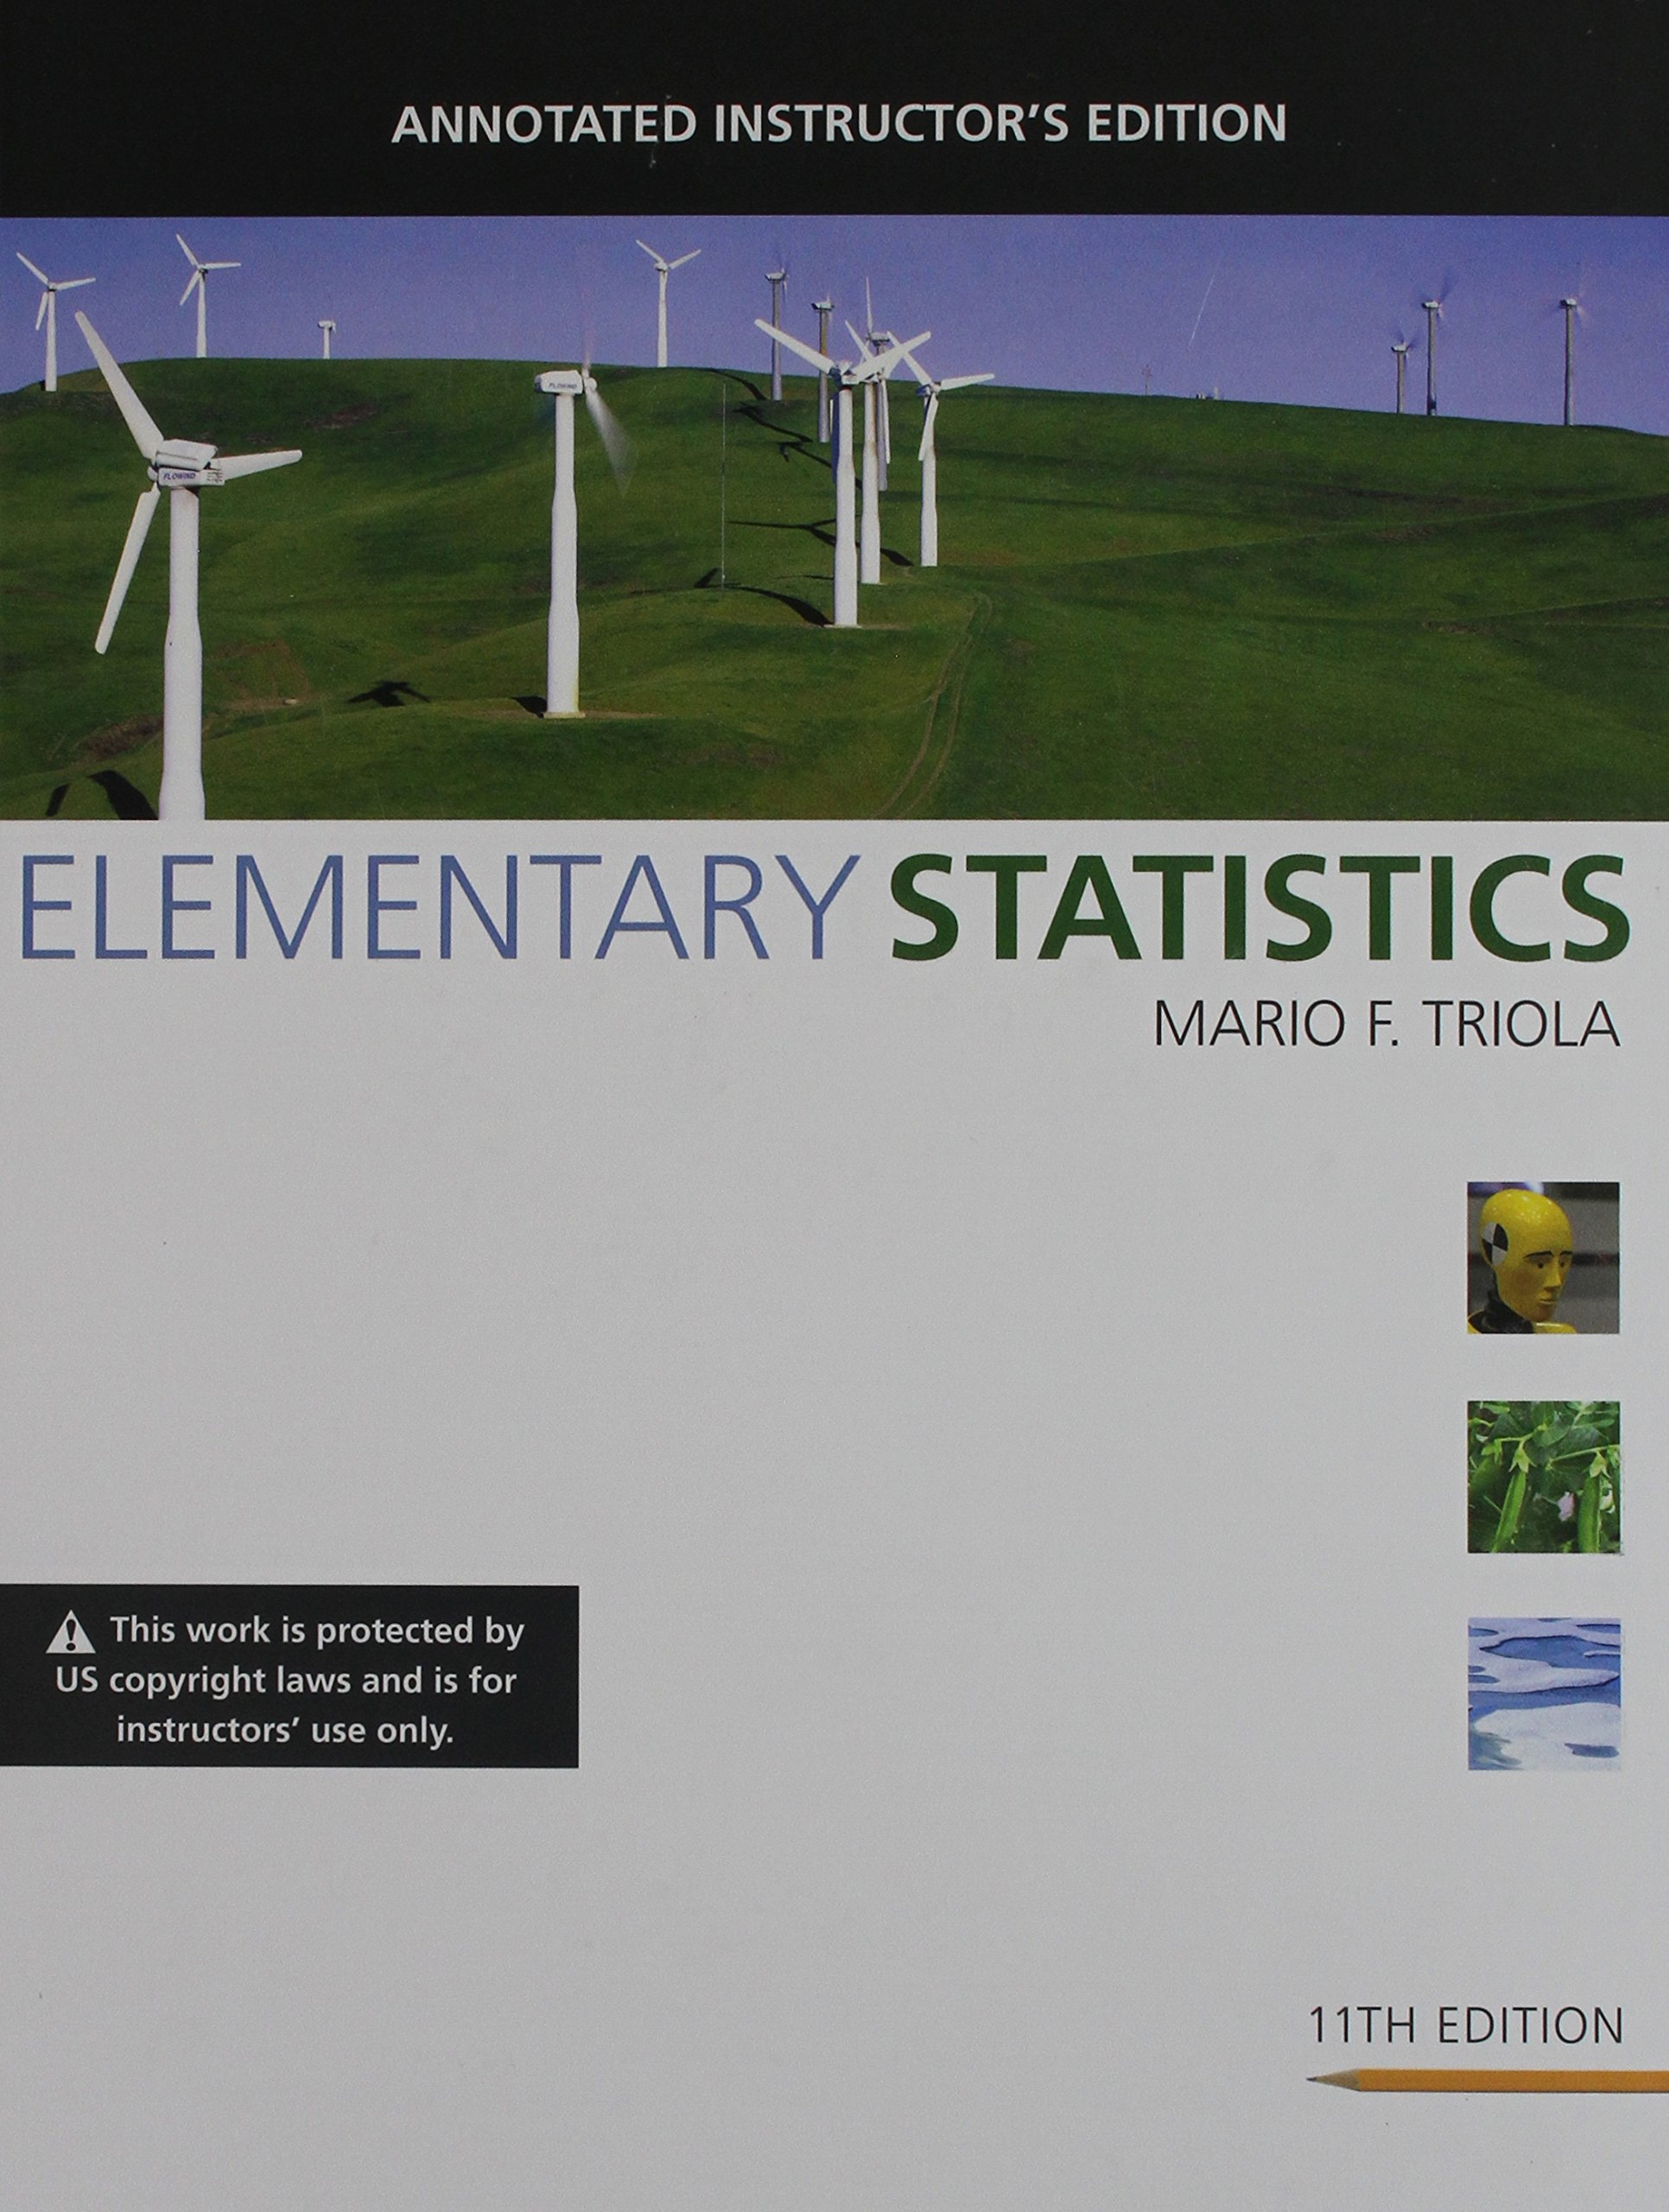 Elementary statistics annotated instructors edition mario f elementary statistics annotated instructors edition mario f triola 9780321570826 amazon books fandeluxe Image collections